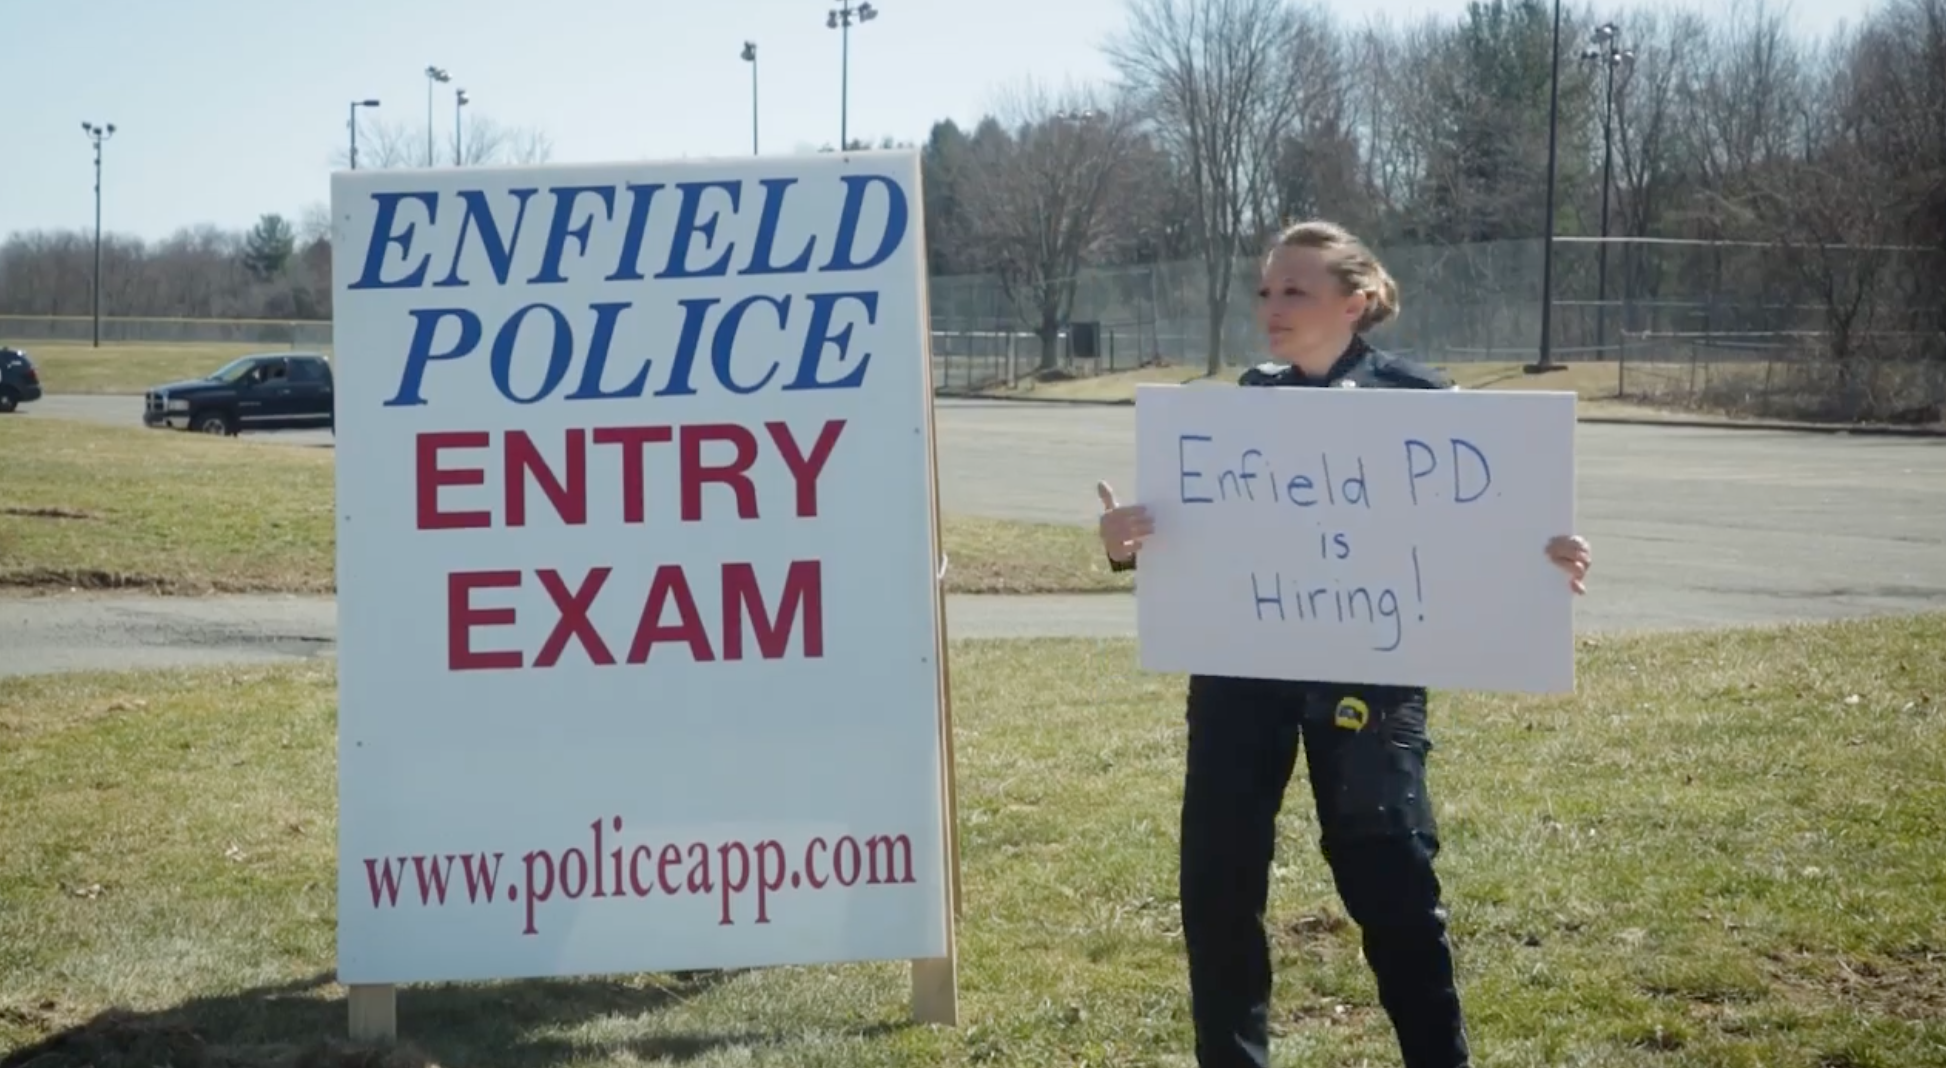 Enfield Police Department Recruiting